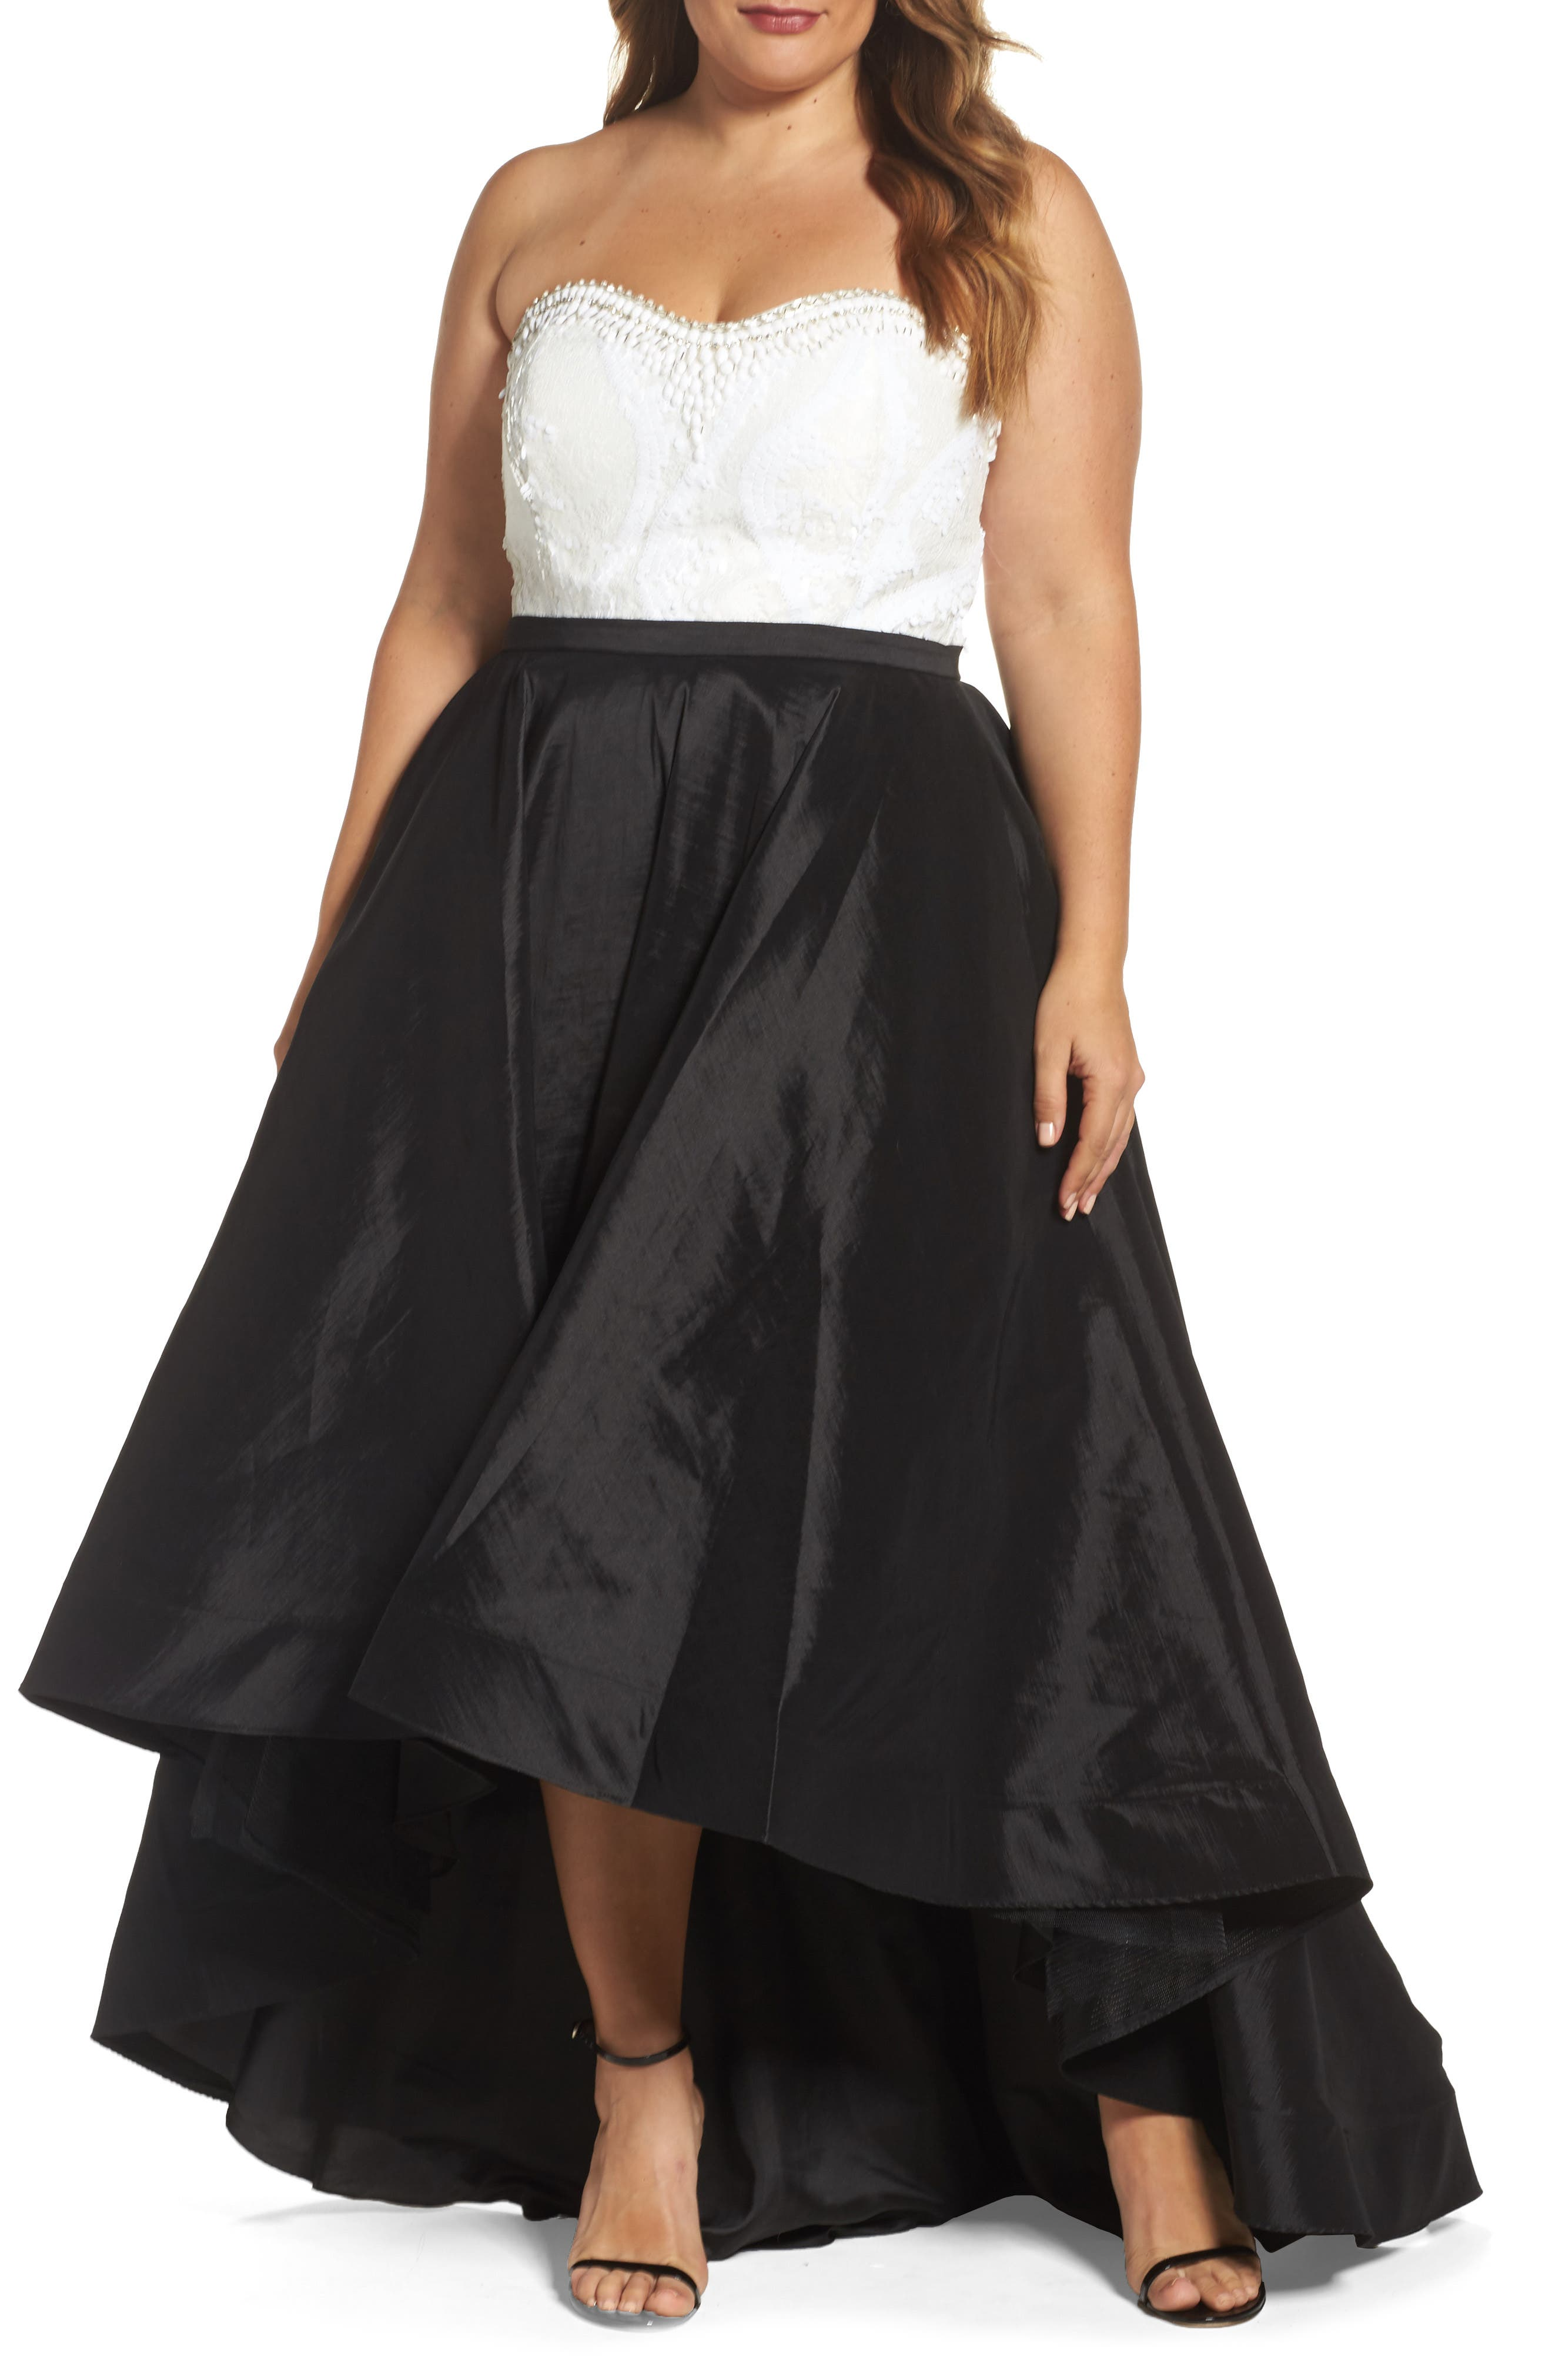 Alternate Image 1 Selected - Mac Duggal Embellished Lace & Taffeta Strapless High/Low Gown (Plus Size)